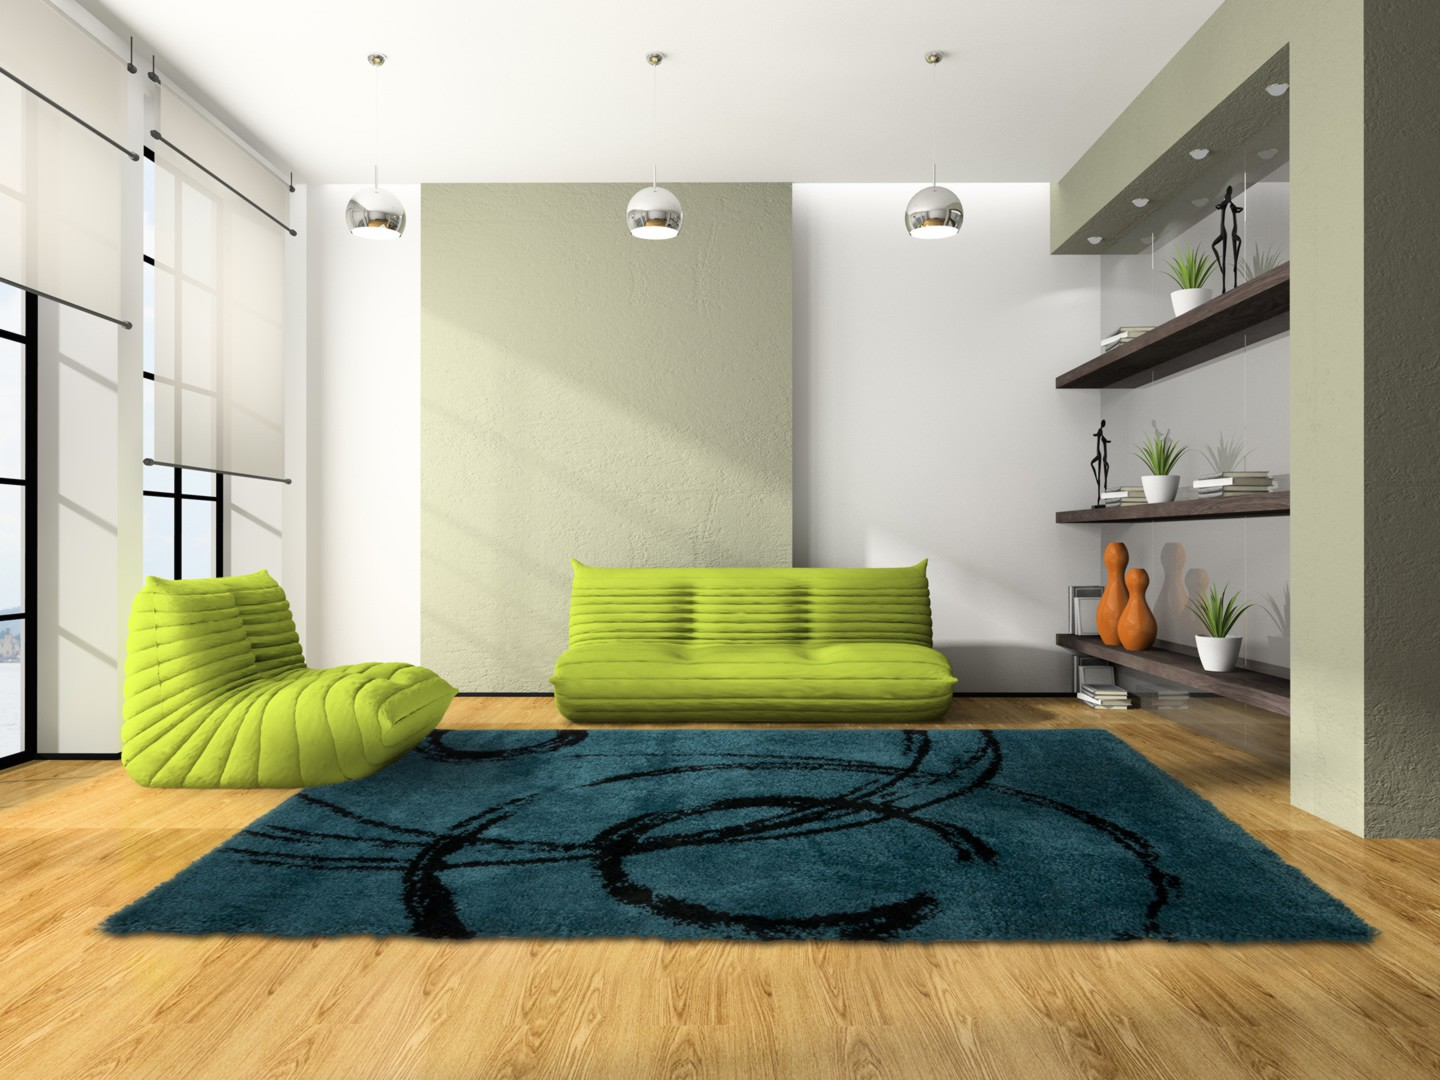 tapis shaggy vert anis cool salle de bains douche tapis shaggy tapis de bain with tapis shaggy. Black Bedroom Furniture Sets. Home Design Ideas